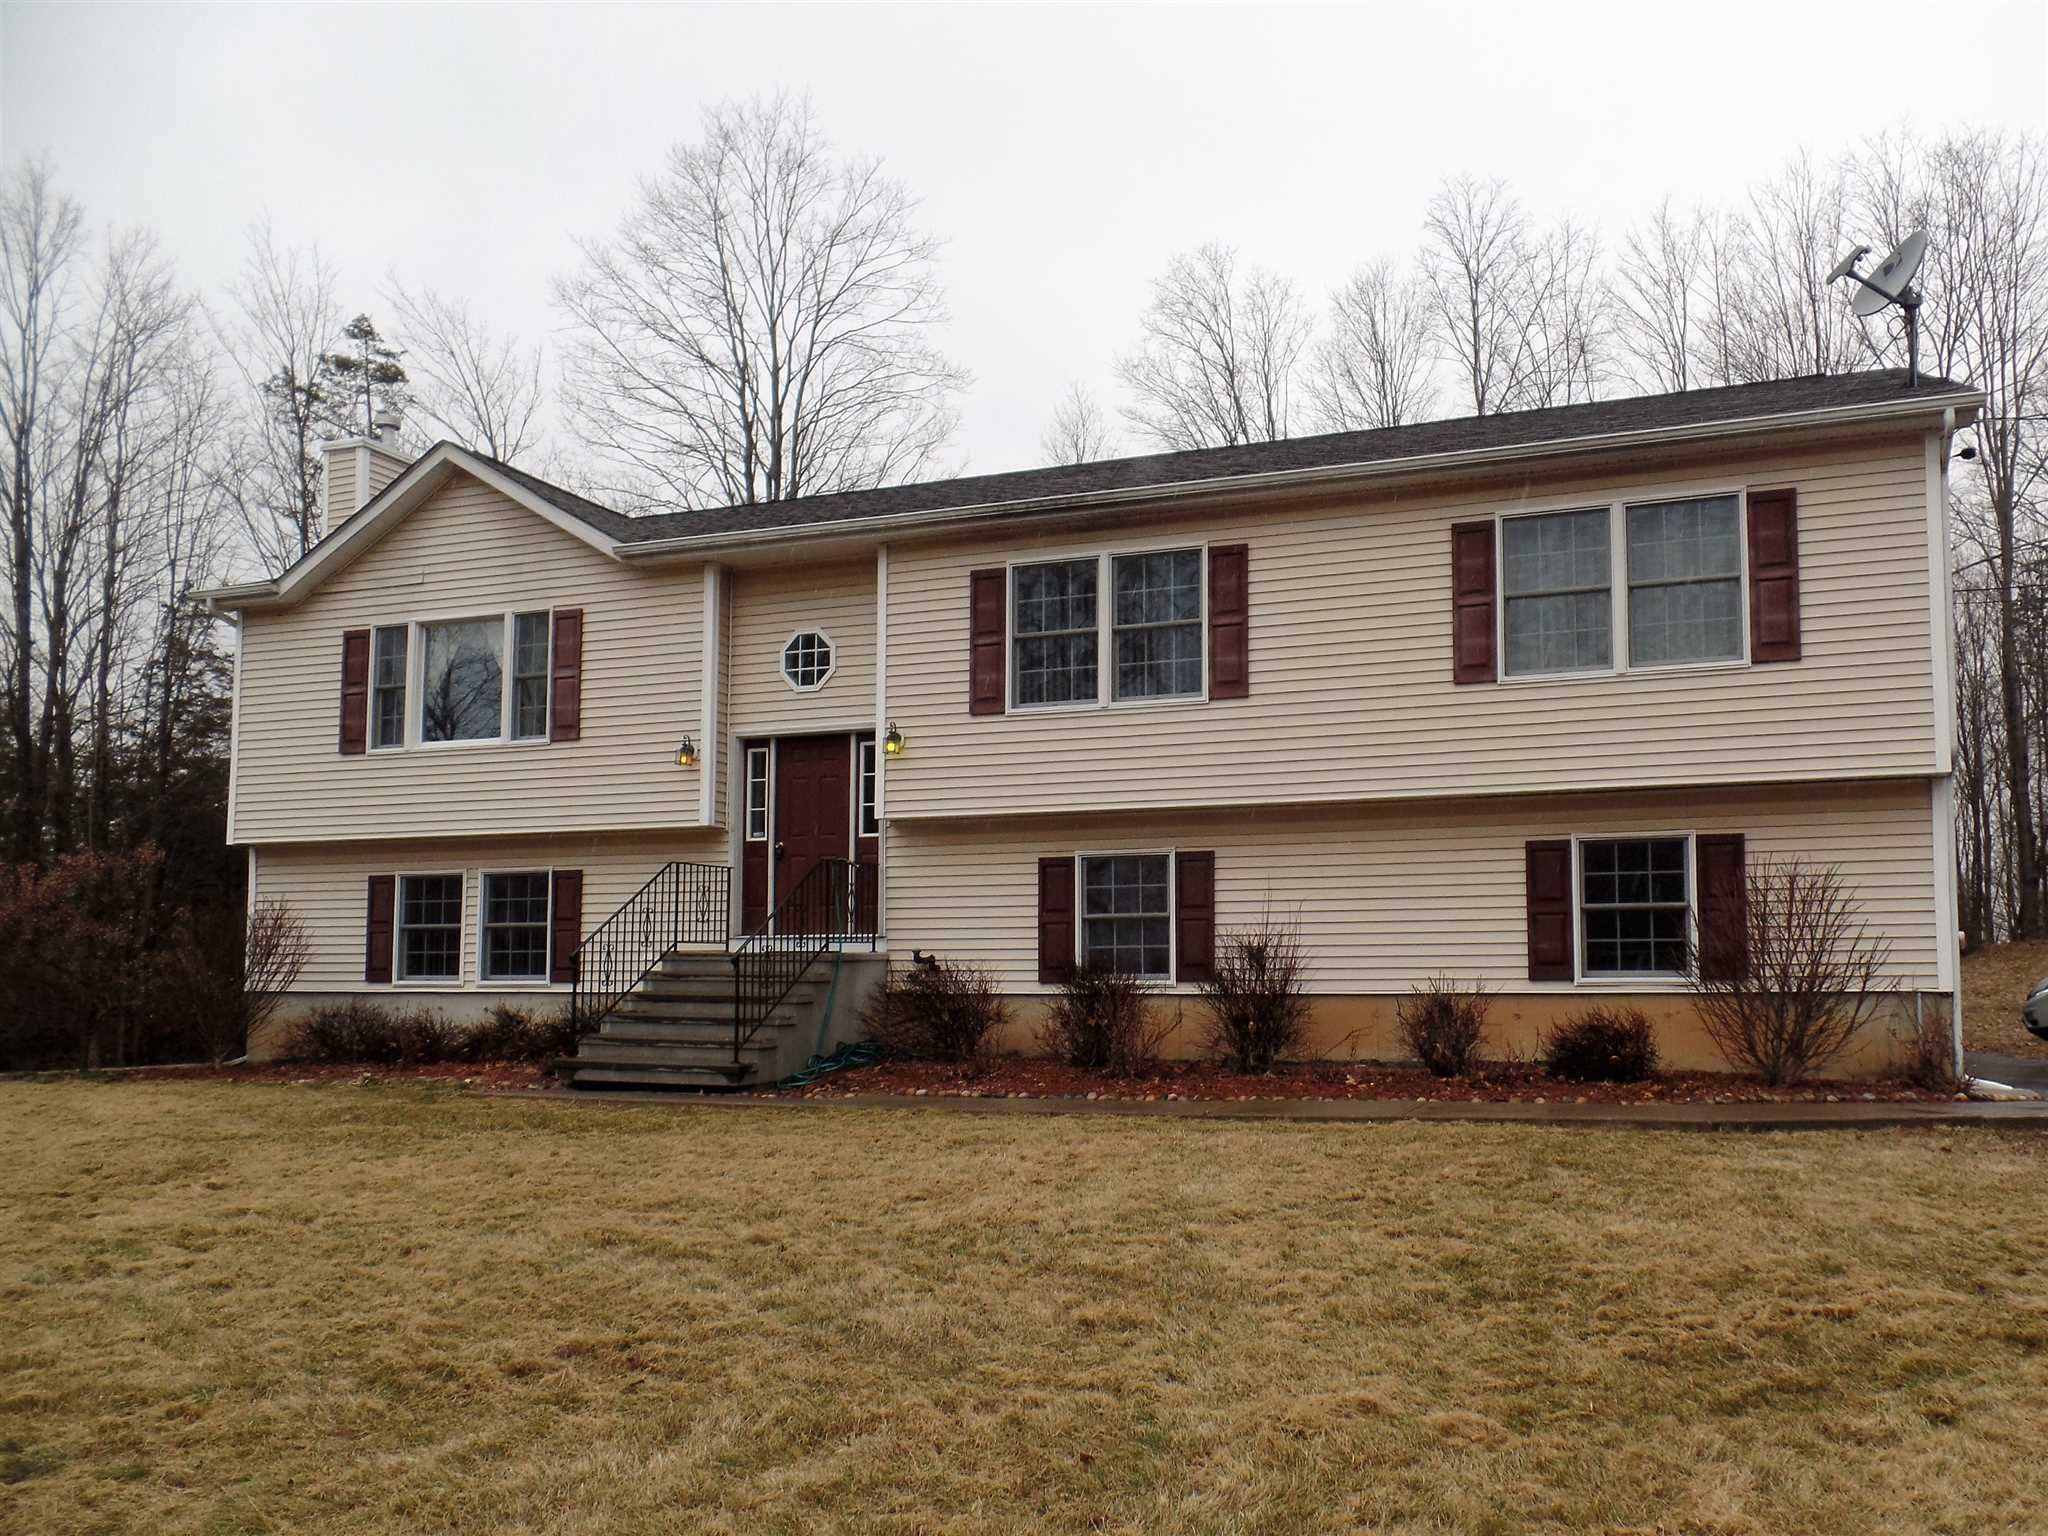 Single Family Home for Sale at 59 OHALLORAN CIRCLE 59 OHALLORAN CIRCLE Pleasant Valley, New York 12569 United States